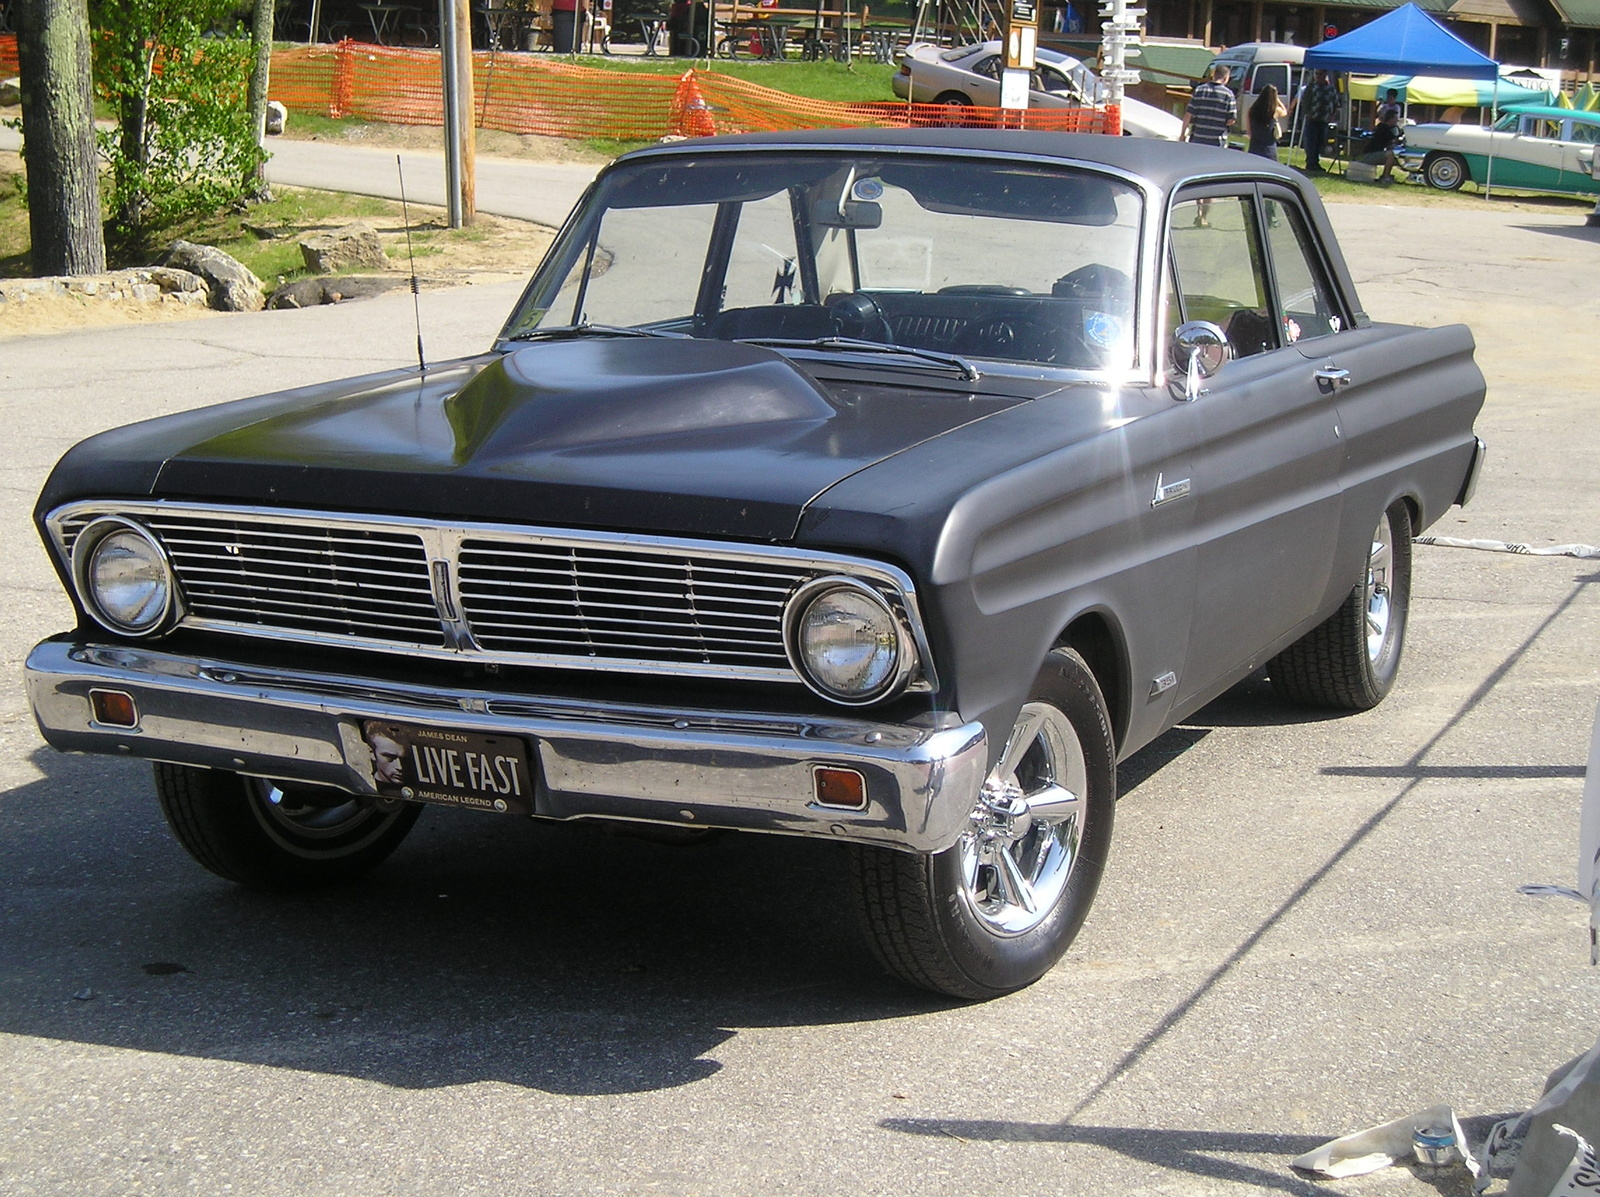 1961 ford falcon for sale racingjunk classifieds - 1965_ford_falcon Pic 16271 Jpeg 1 600 1 197 Pixels Ford Falconbig